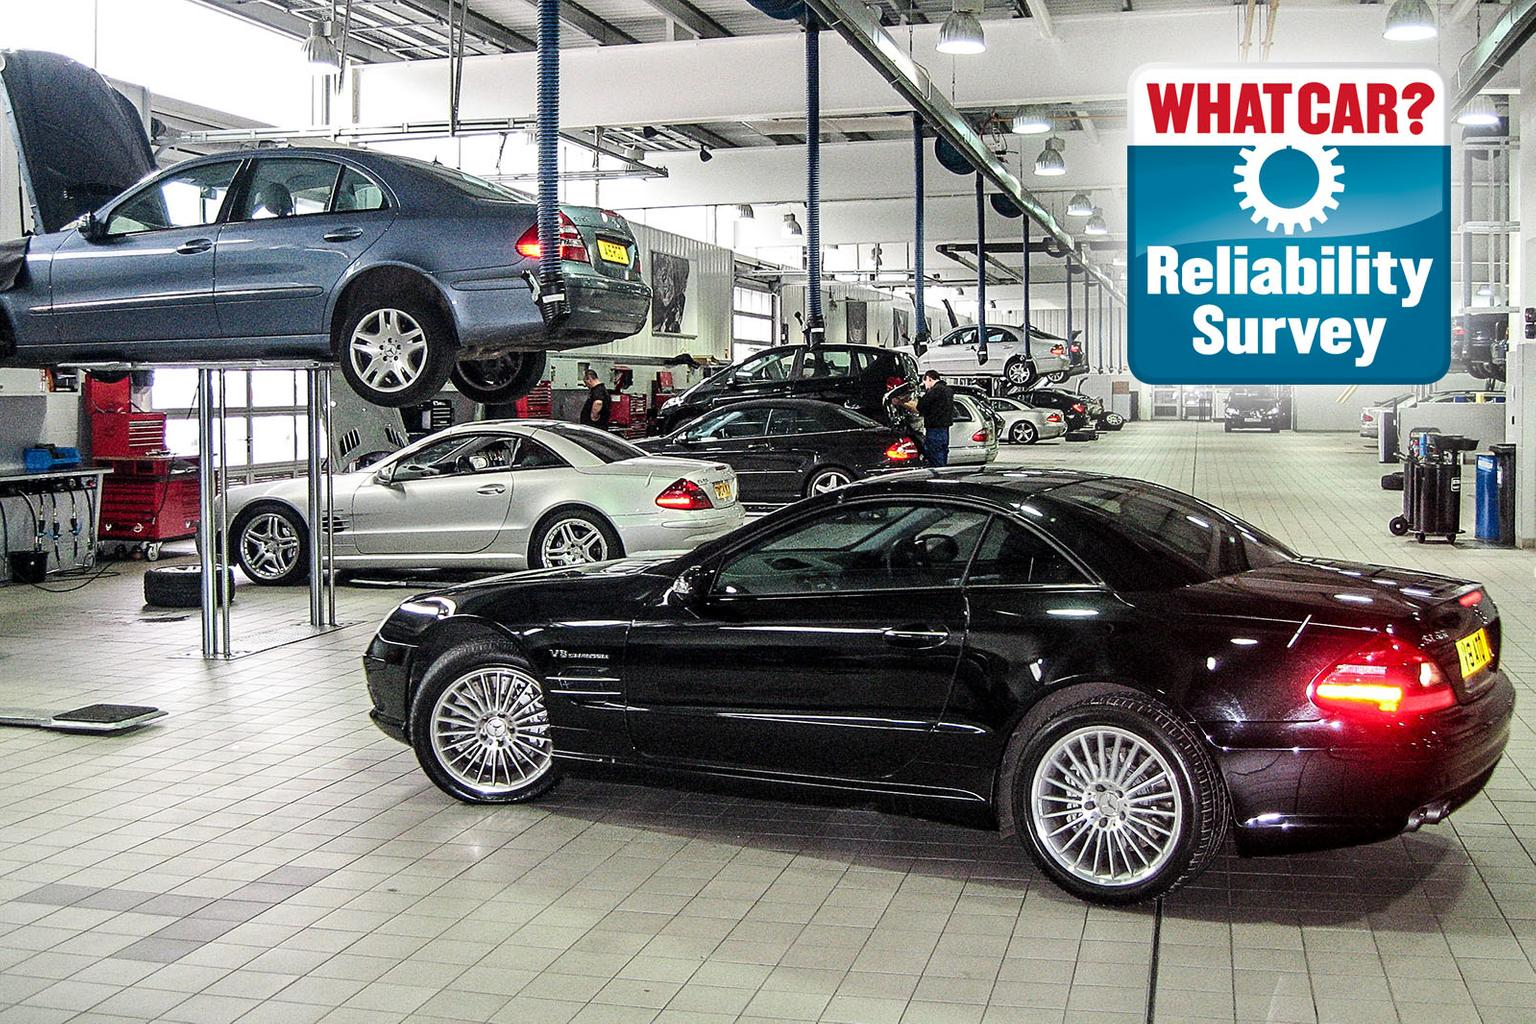 What Car? Reliability Survey - tell us about your car and you could win £1000